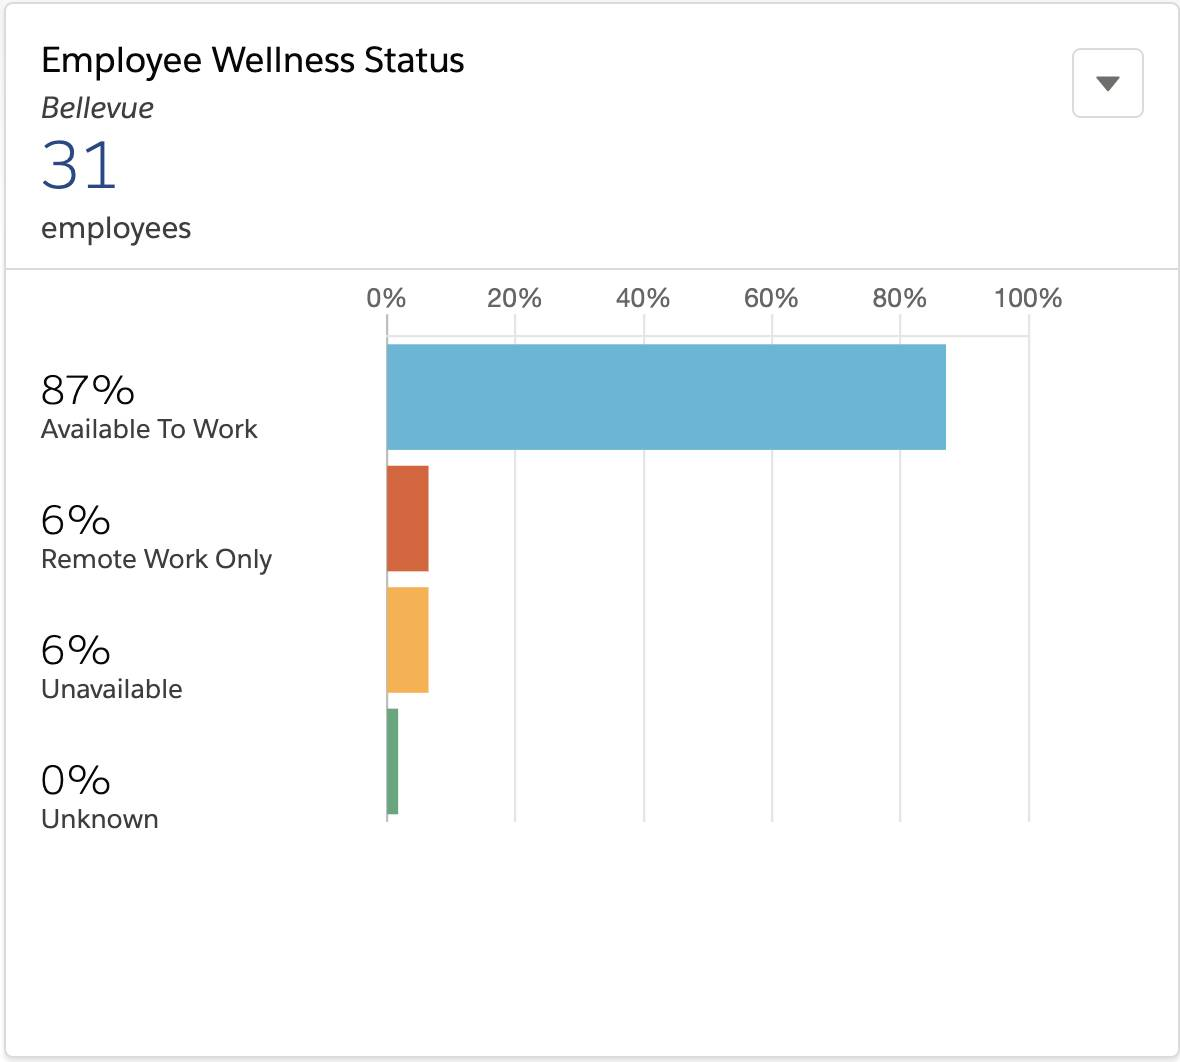 Employee Wellness Status depicting how many employees are available and unavailable to return to work.